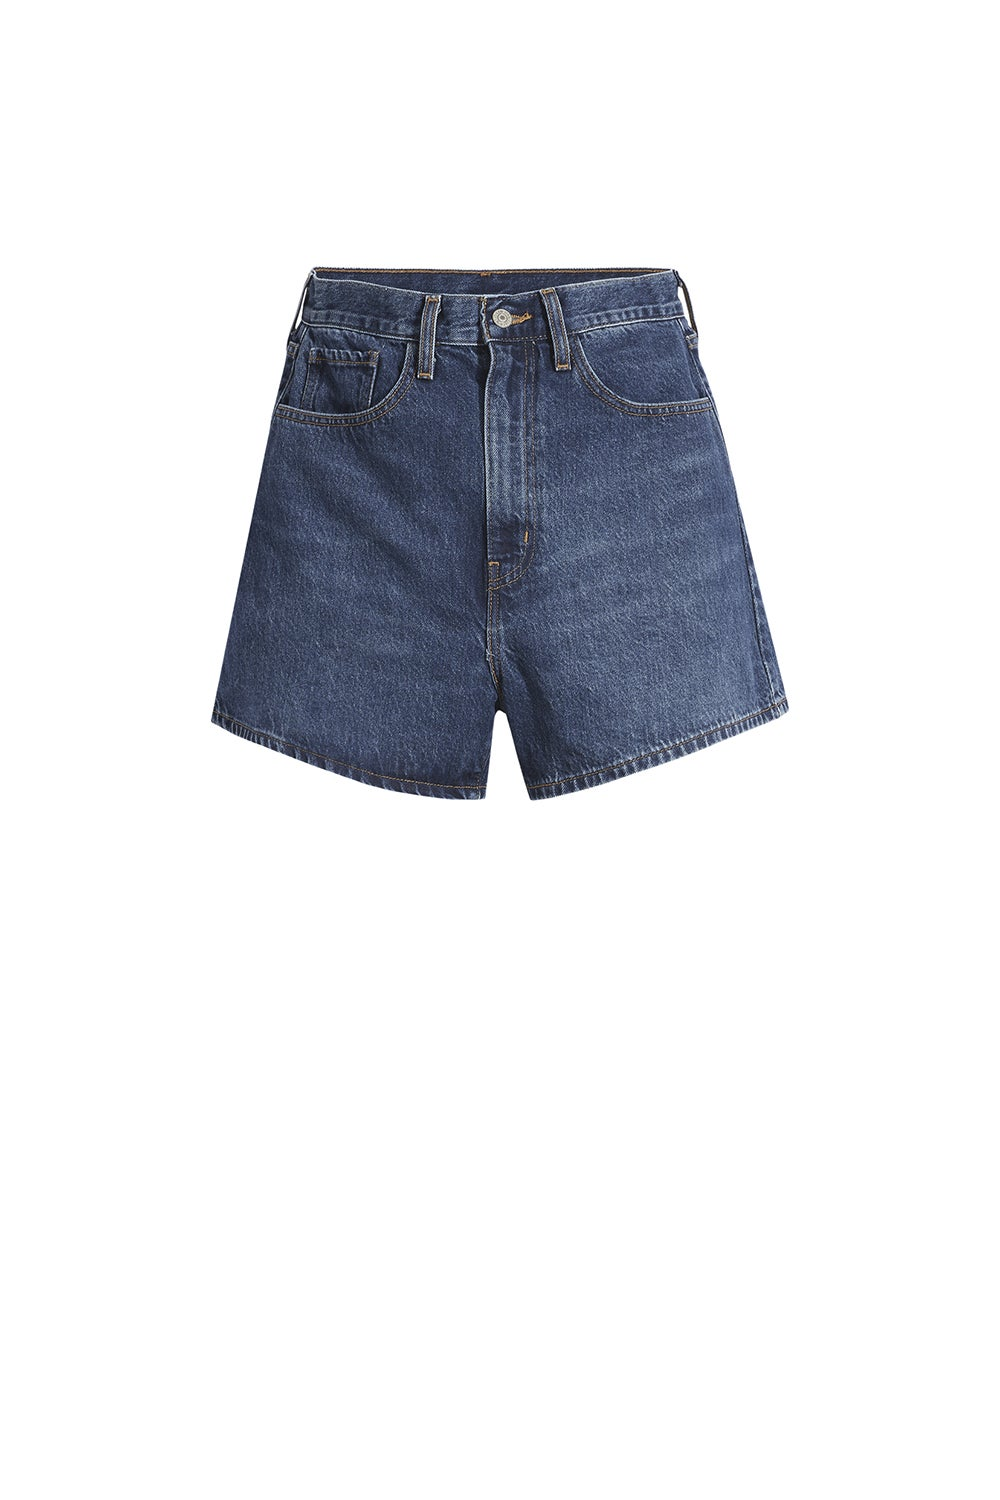 Levi's High Loose Shorts Let Me Ride